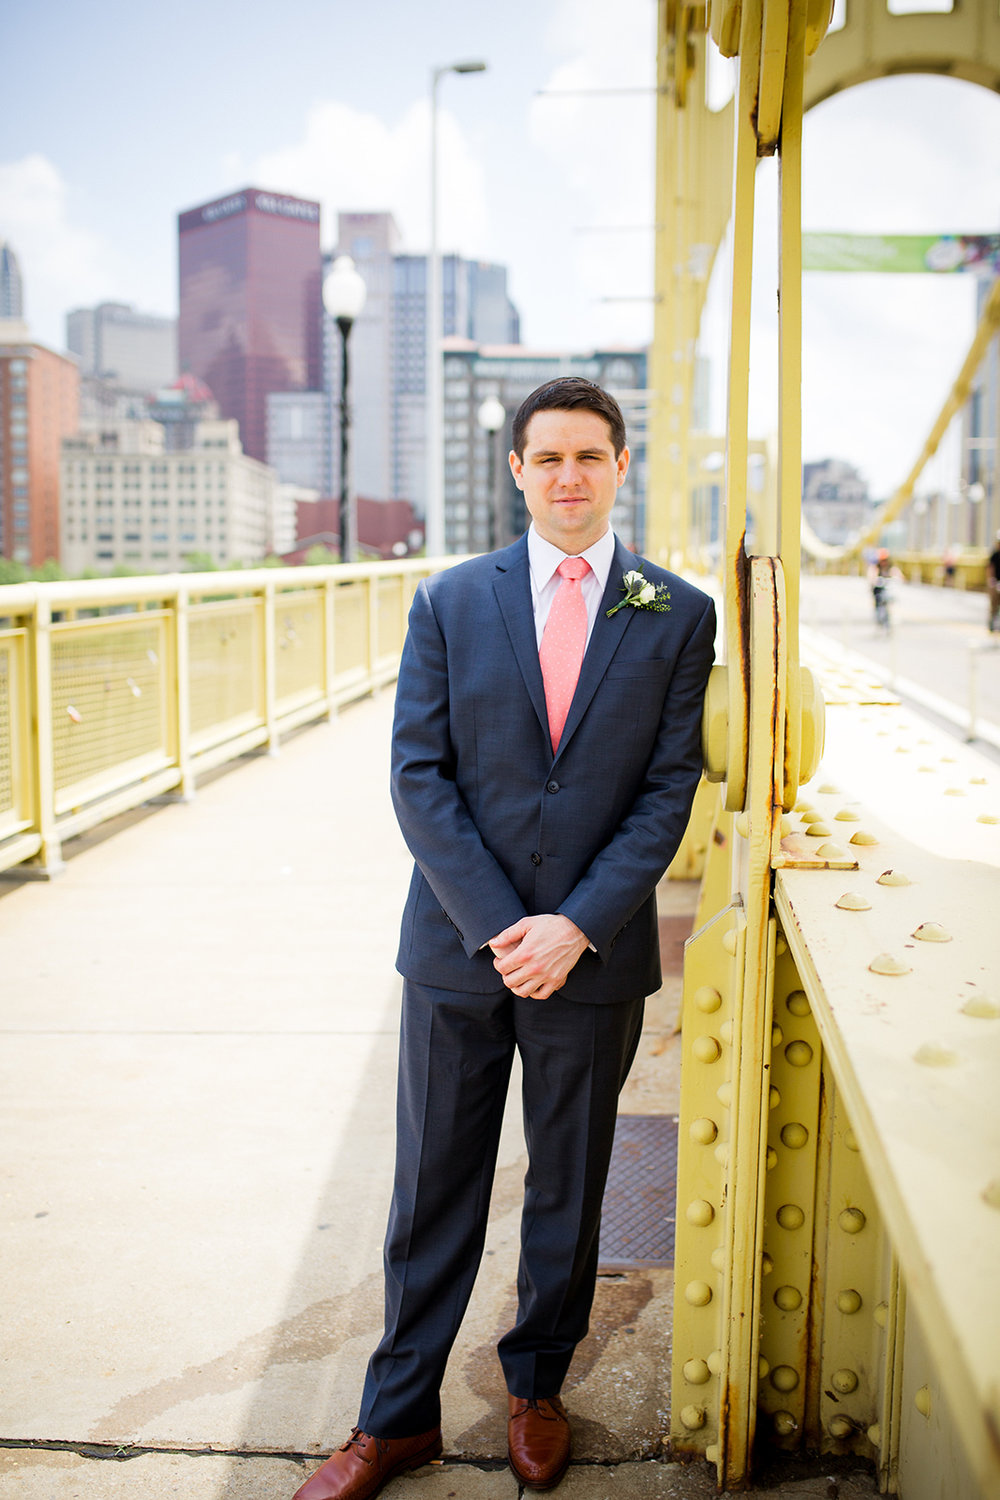 Groom's details for school-themed vintage wedding in Pittsburgh at Ace Hotel. See more fun details at exhale-events.com!